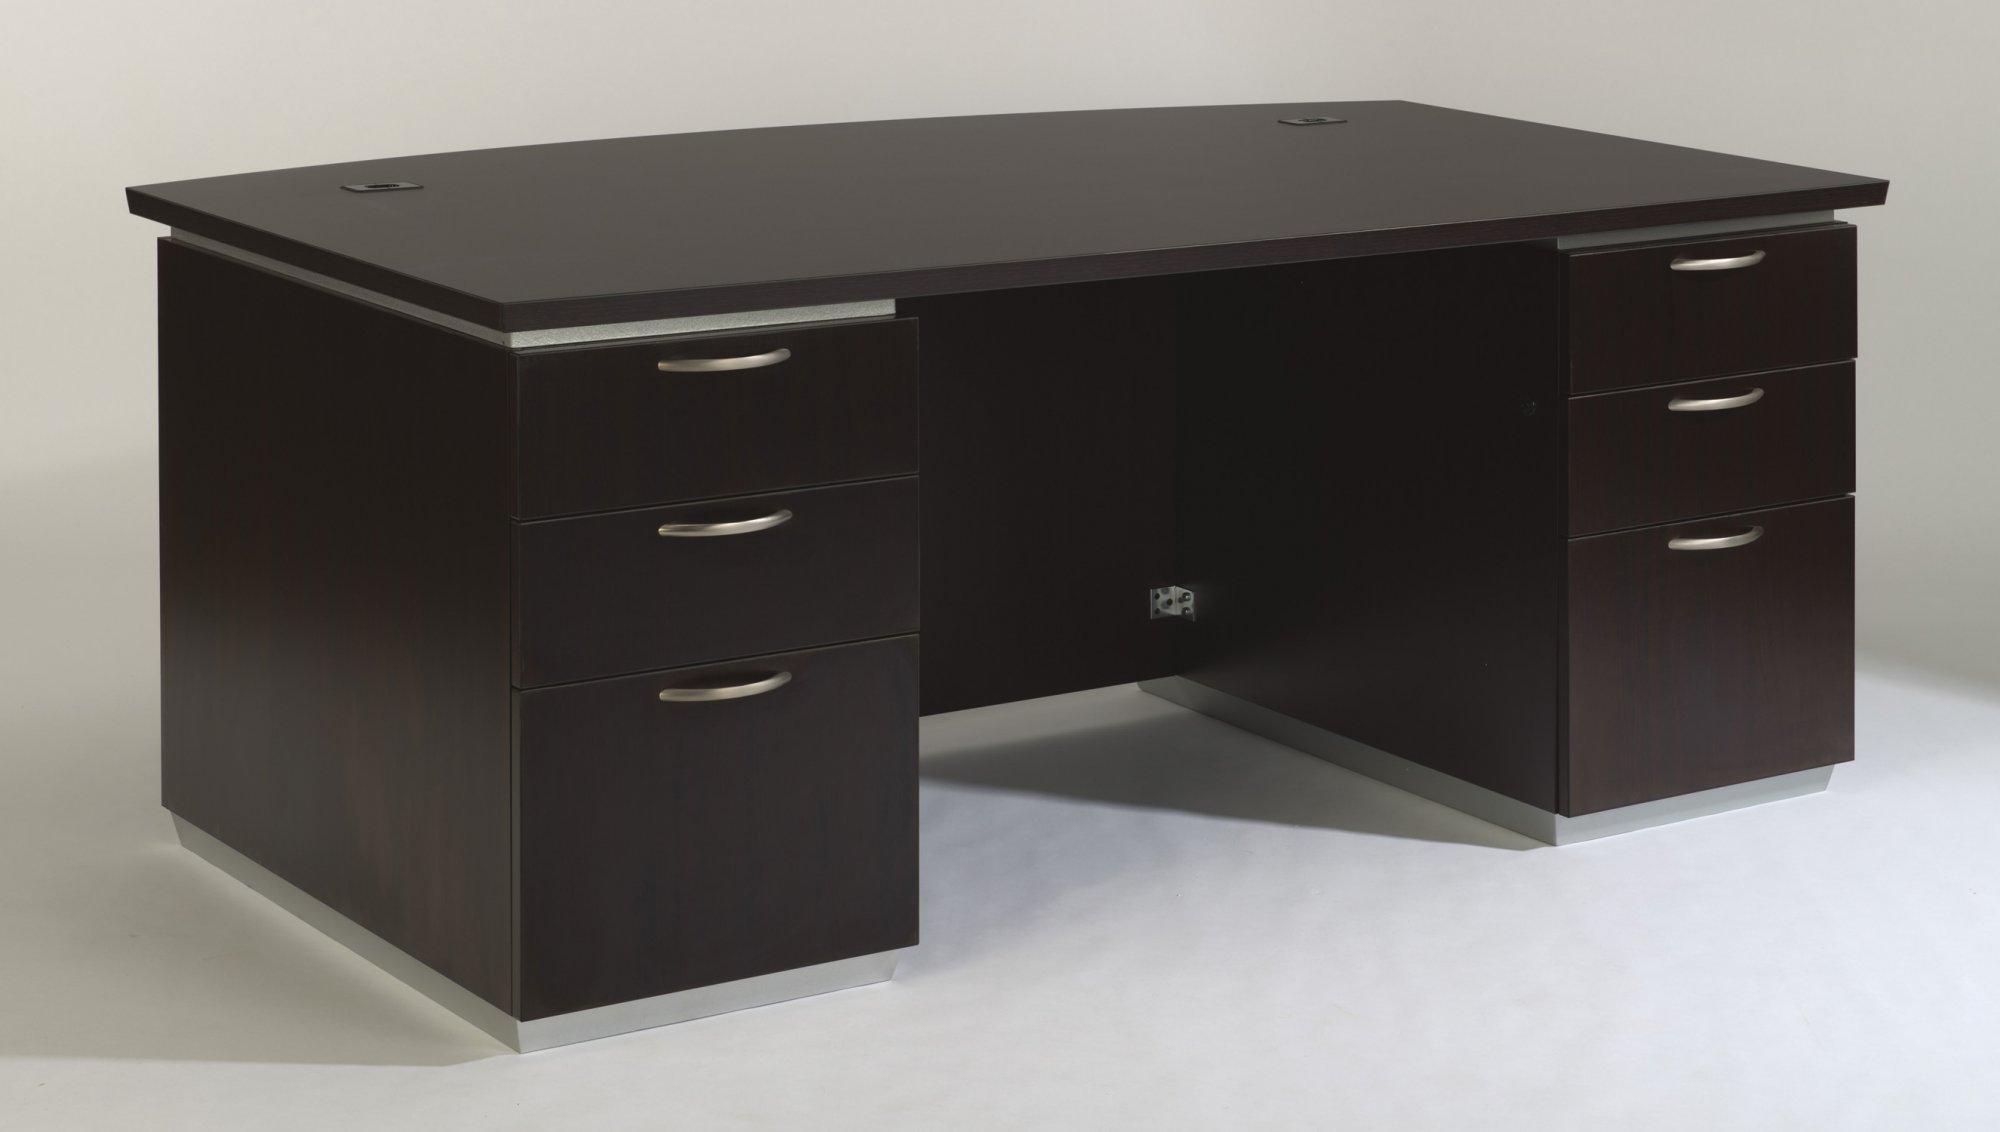 EXECUTIVE BOW FRONT DESK WITH LAMINATE MODESTY PANEL